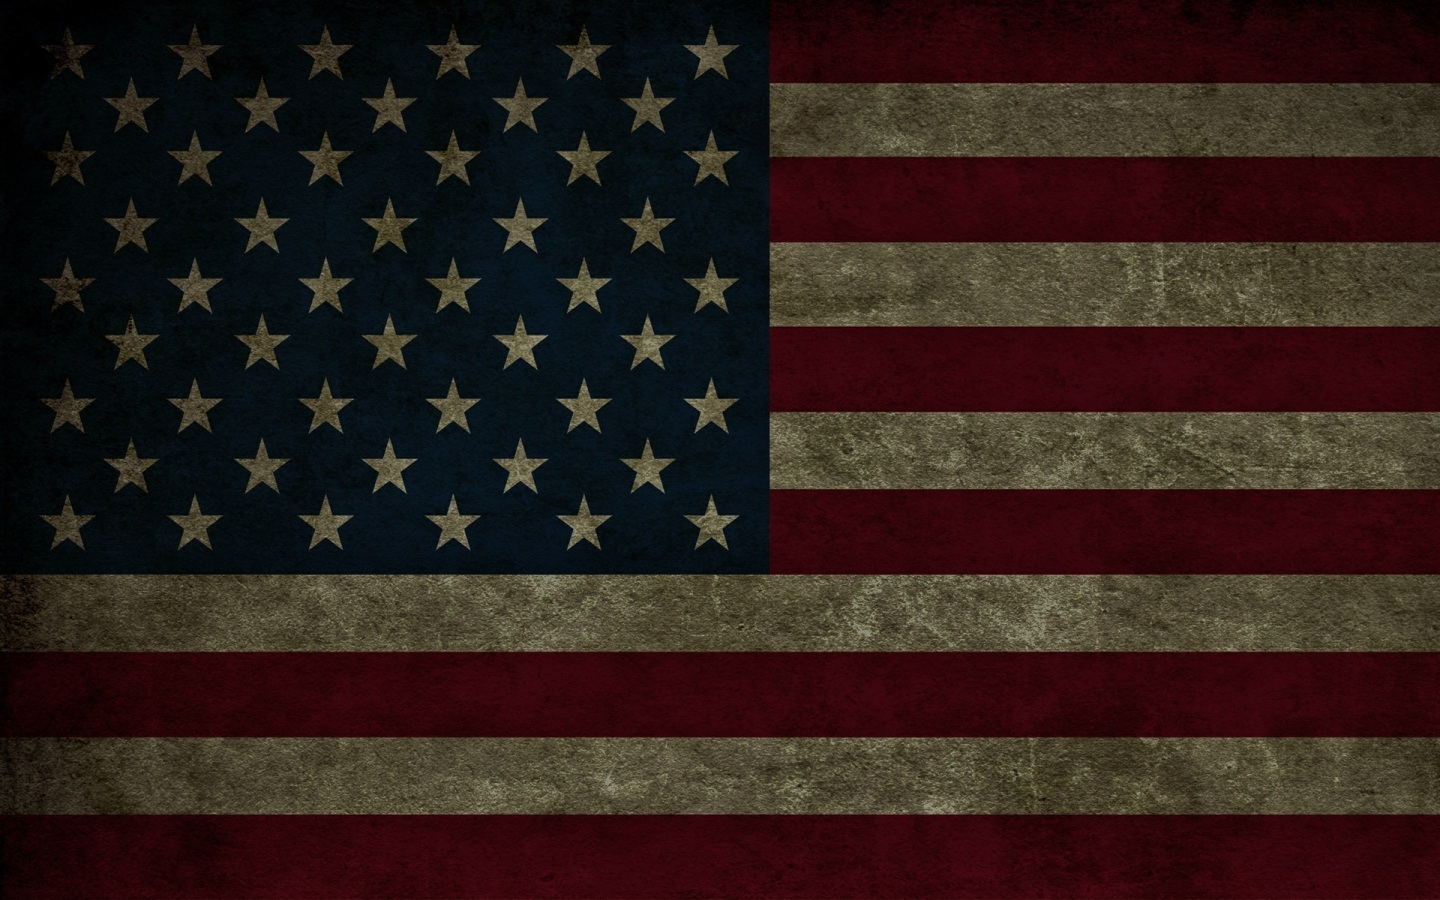 Wallpaper American Flag Wallpaper And Blinds Warehouse Blind Company 1440x900